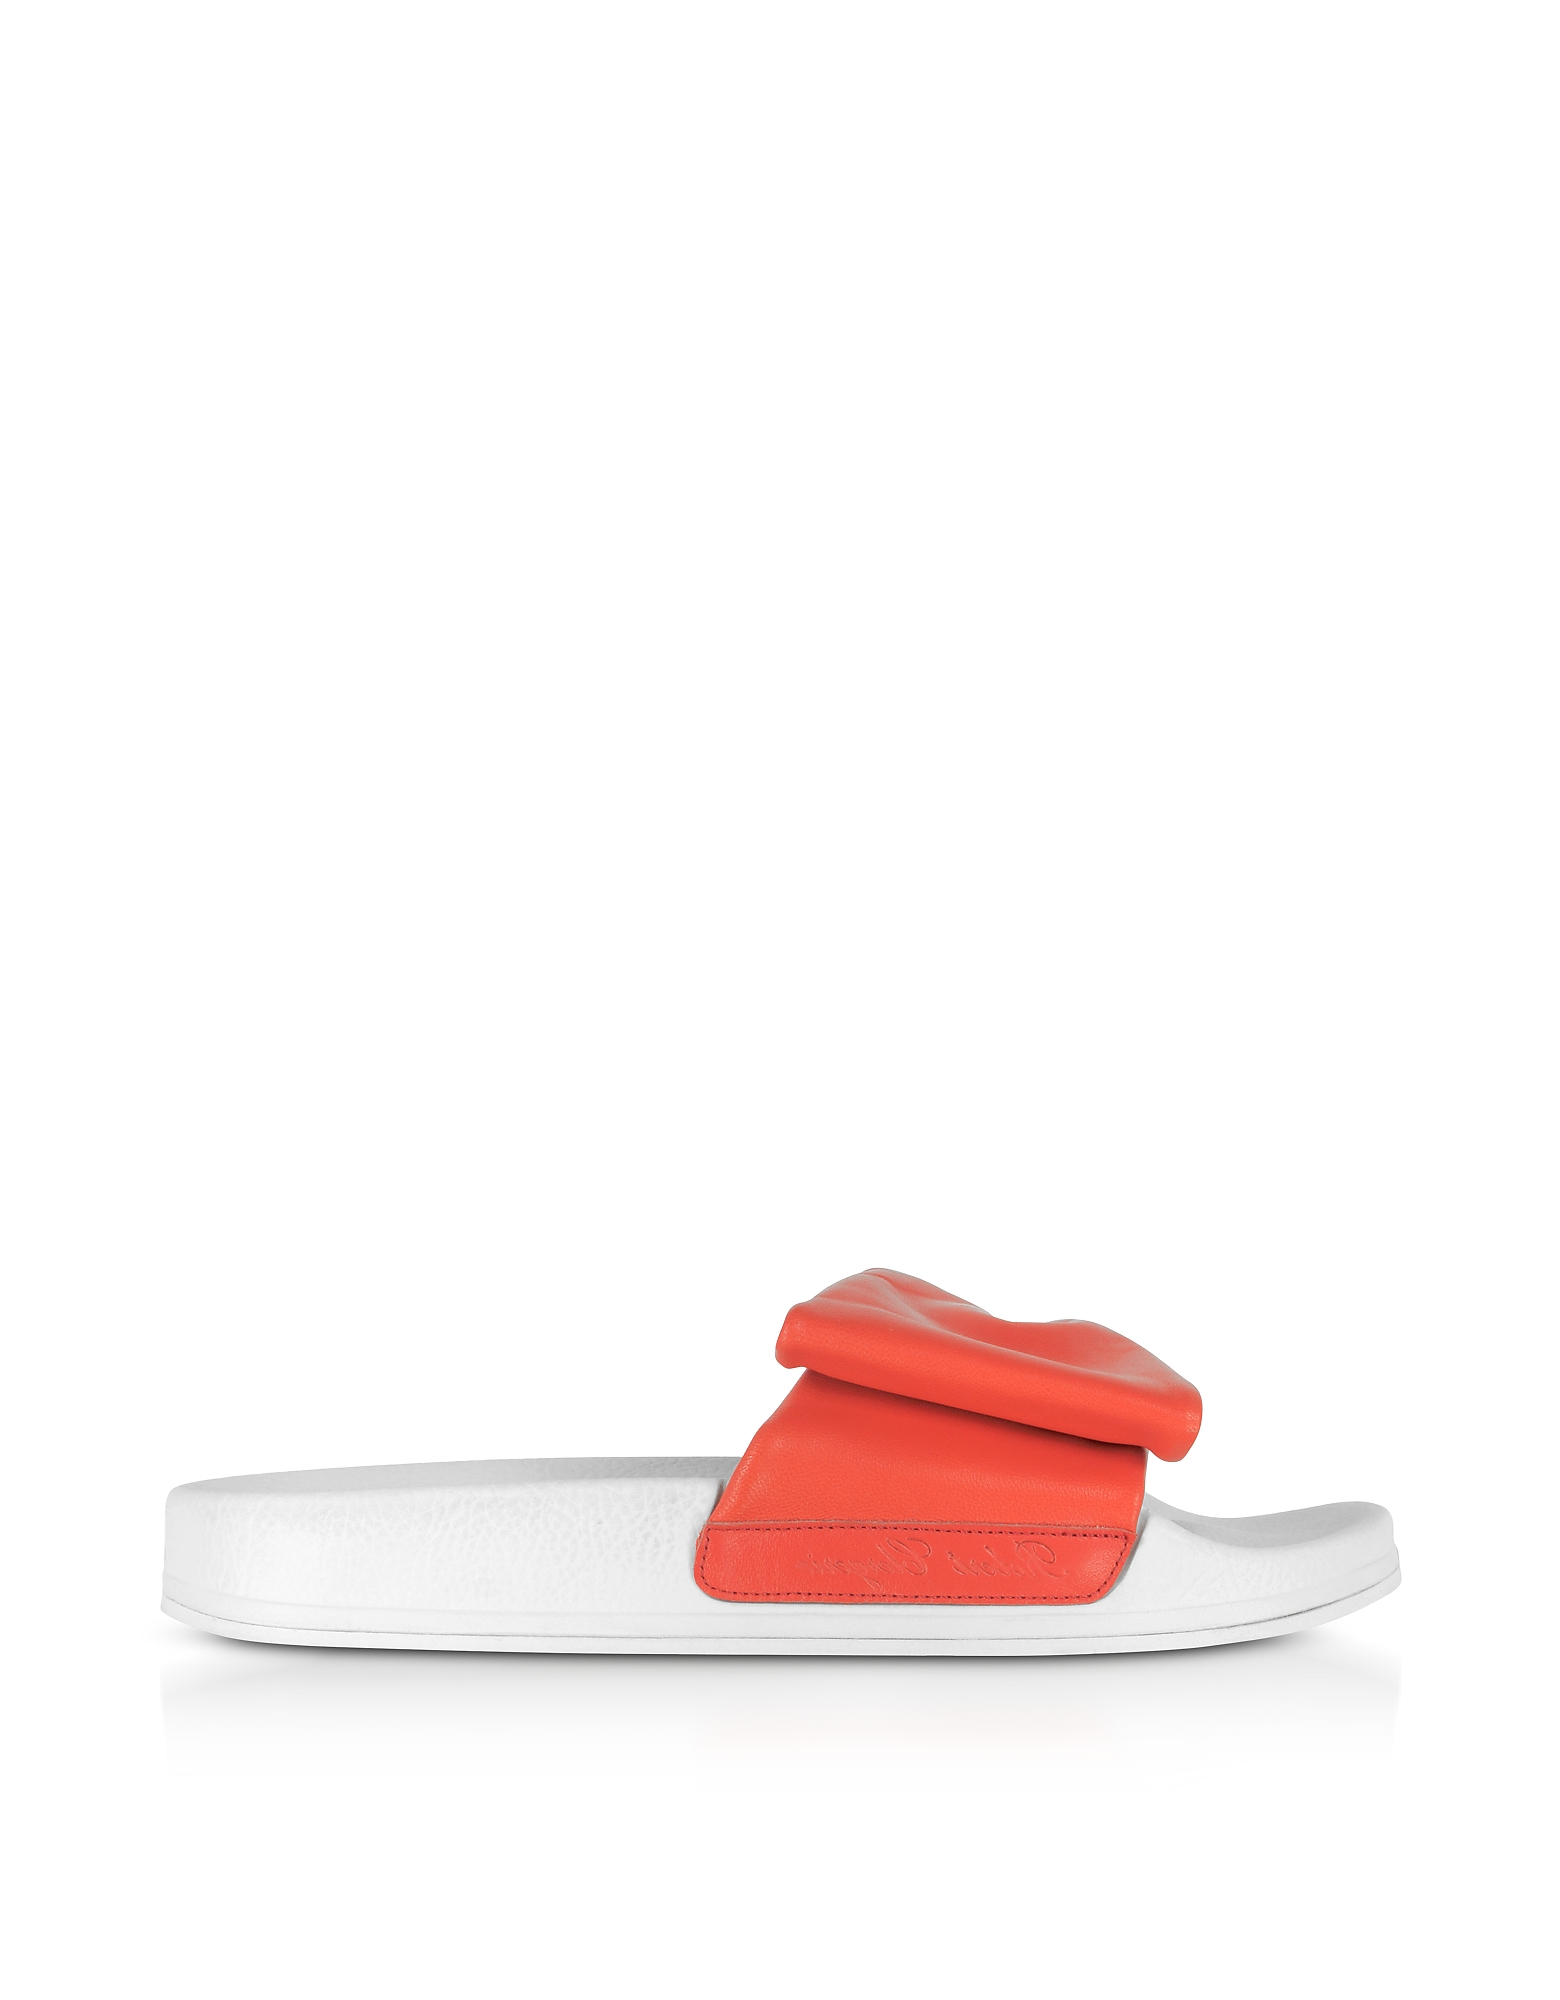 Robert Clergerie Shoes, Wendy Blood Orange Leather Slide Sandals w/White Sole